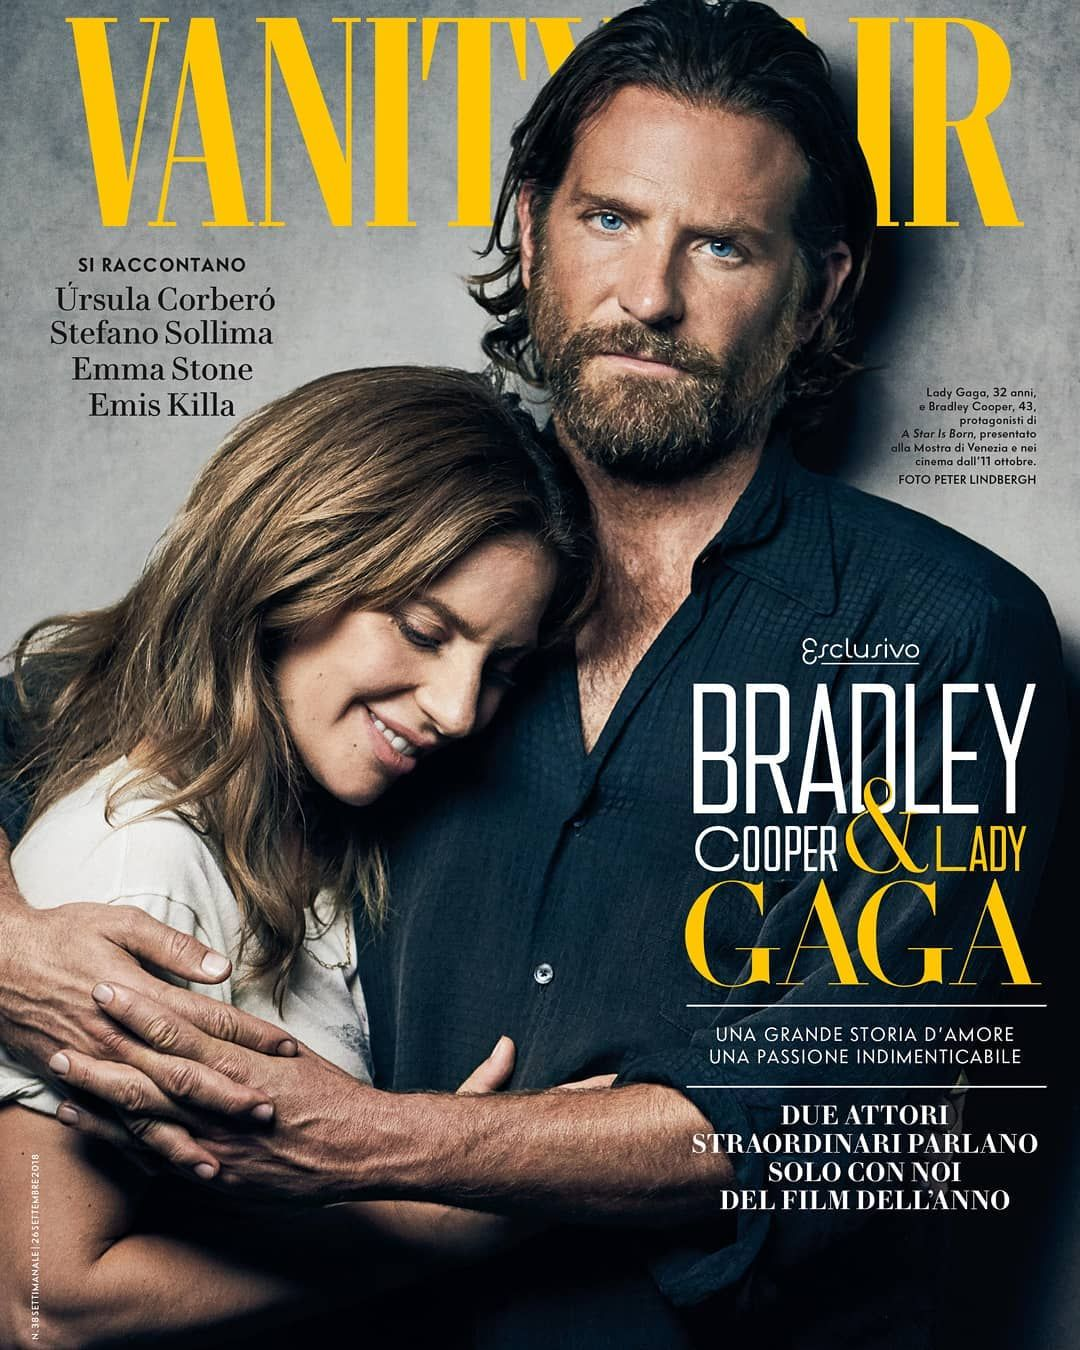 Lady Gaga With Bradley Cooper On Vanity Fair A Star Is Born Lady Gaga Photos Bradley Cooper